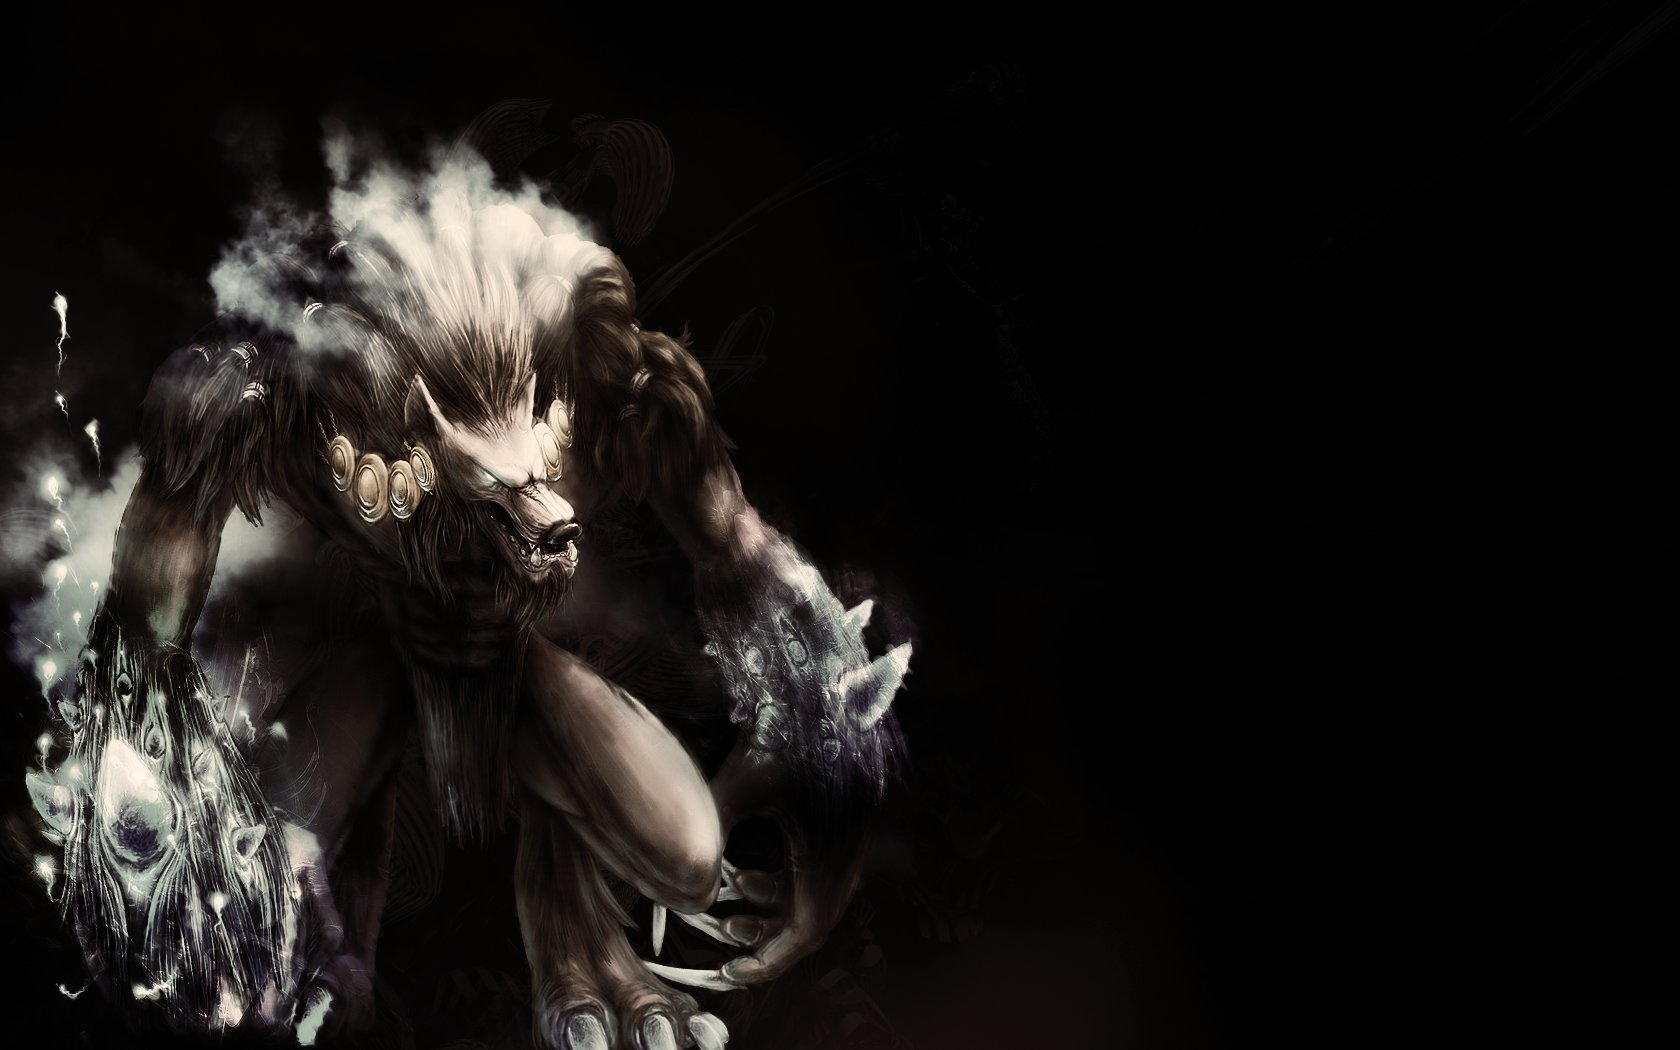 The Beast Wallpaper by FatalAxis 1680x1050